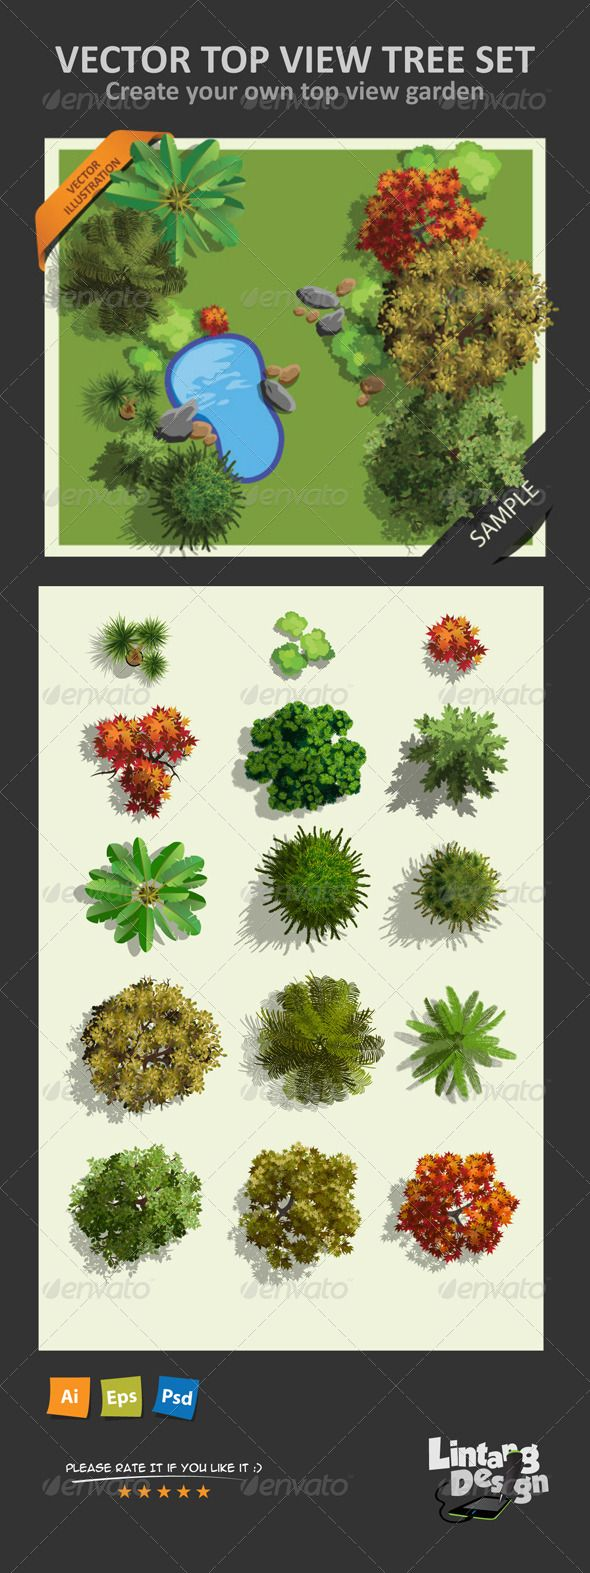 Top View Tree Set 01 http://graphicriver.net/item/top-view-tree-set-01/8158419?ref=damiamio This pack is content of Top view Tree Illustration vector, available in 15 Trees top view, This package is very useful to complement the image of your top view map or your master plan map. It's also available in any following graphic format: - In AI CS 3 format (100% Vector) - In EPS Illustrator 10 format (100% Vector) - In PSD format ( 1550×1550 pixel , 300dpi ) For more Top View Map Element you also…